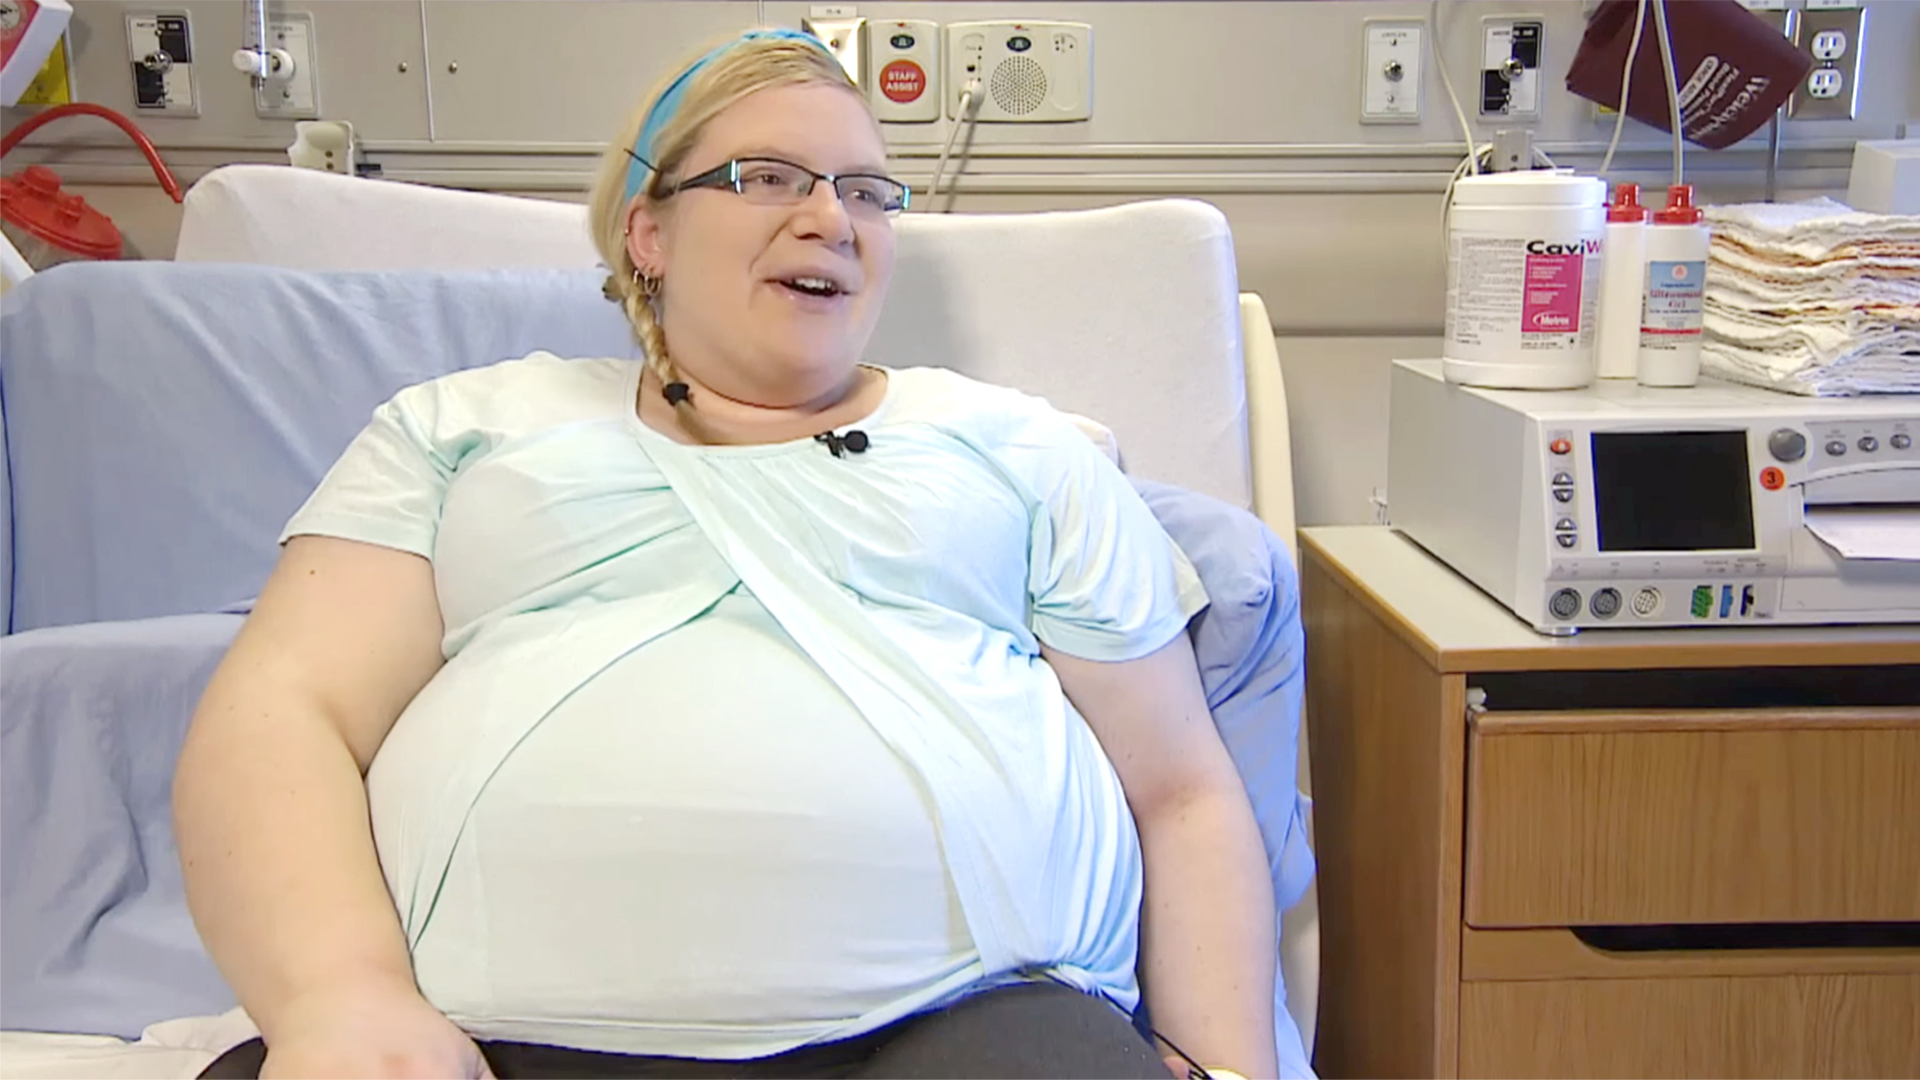 Woman pregnant with quadruplets ... - Daily Mail Online